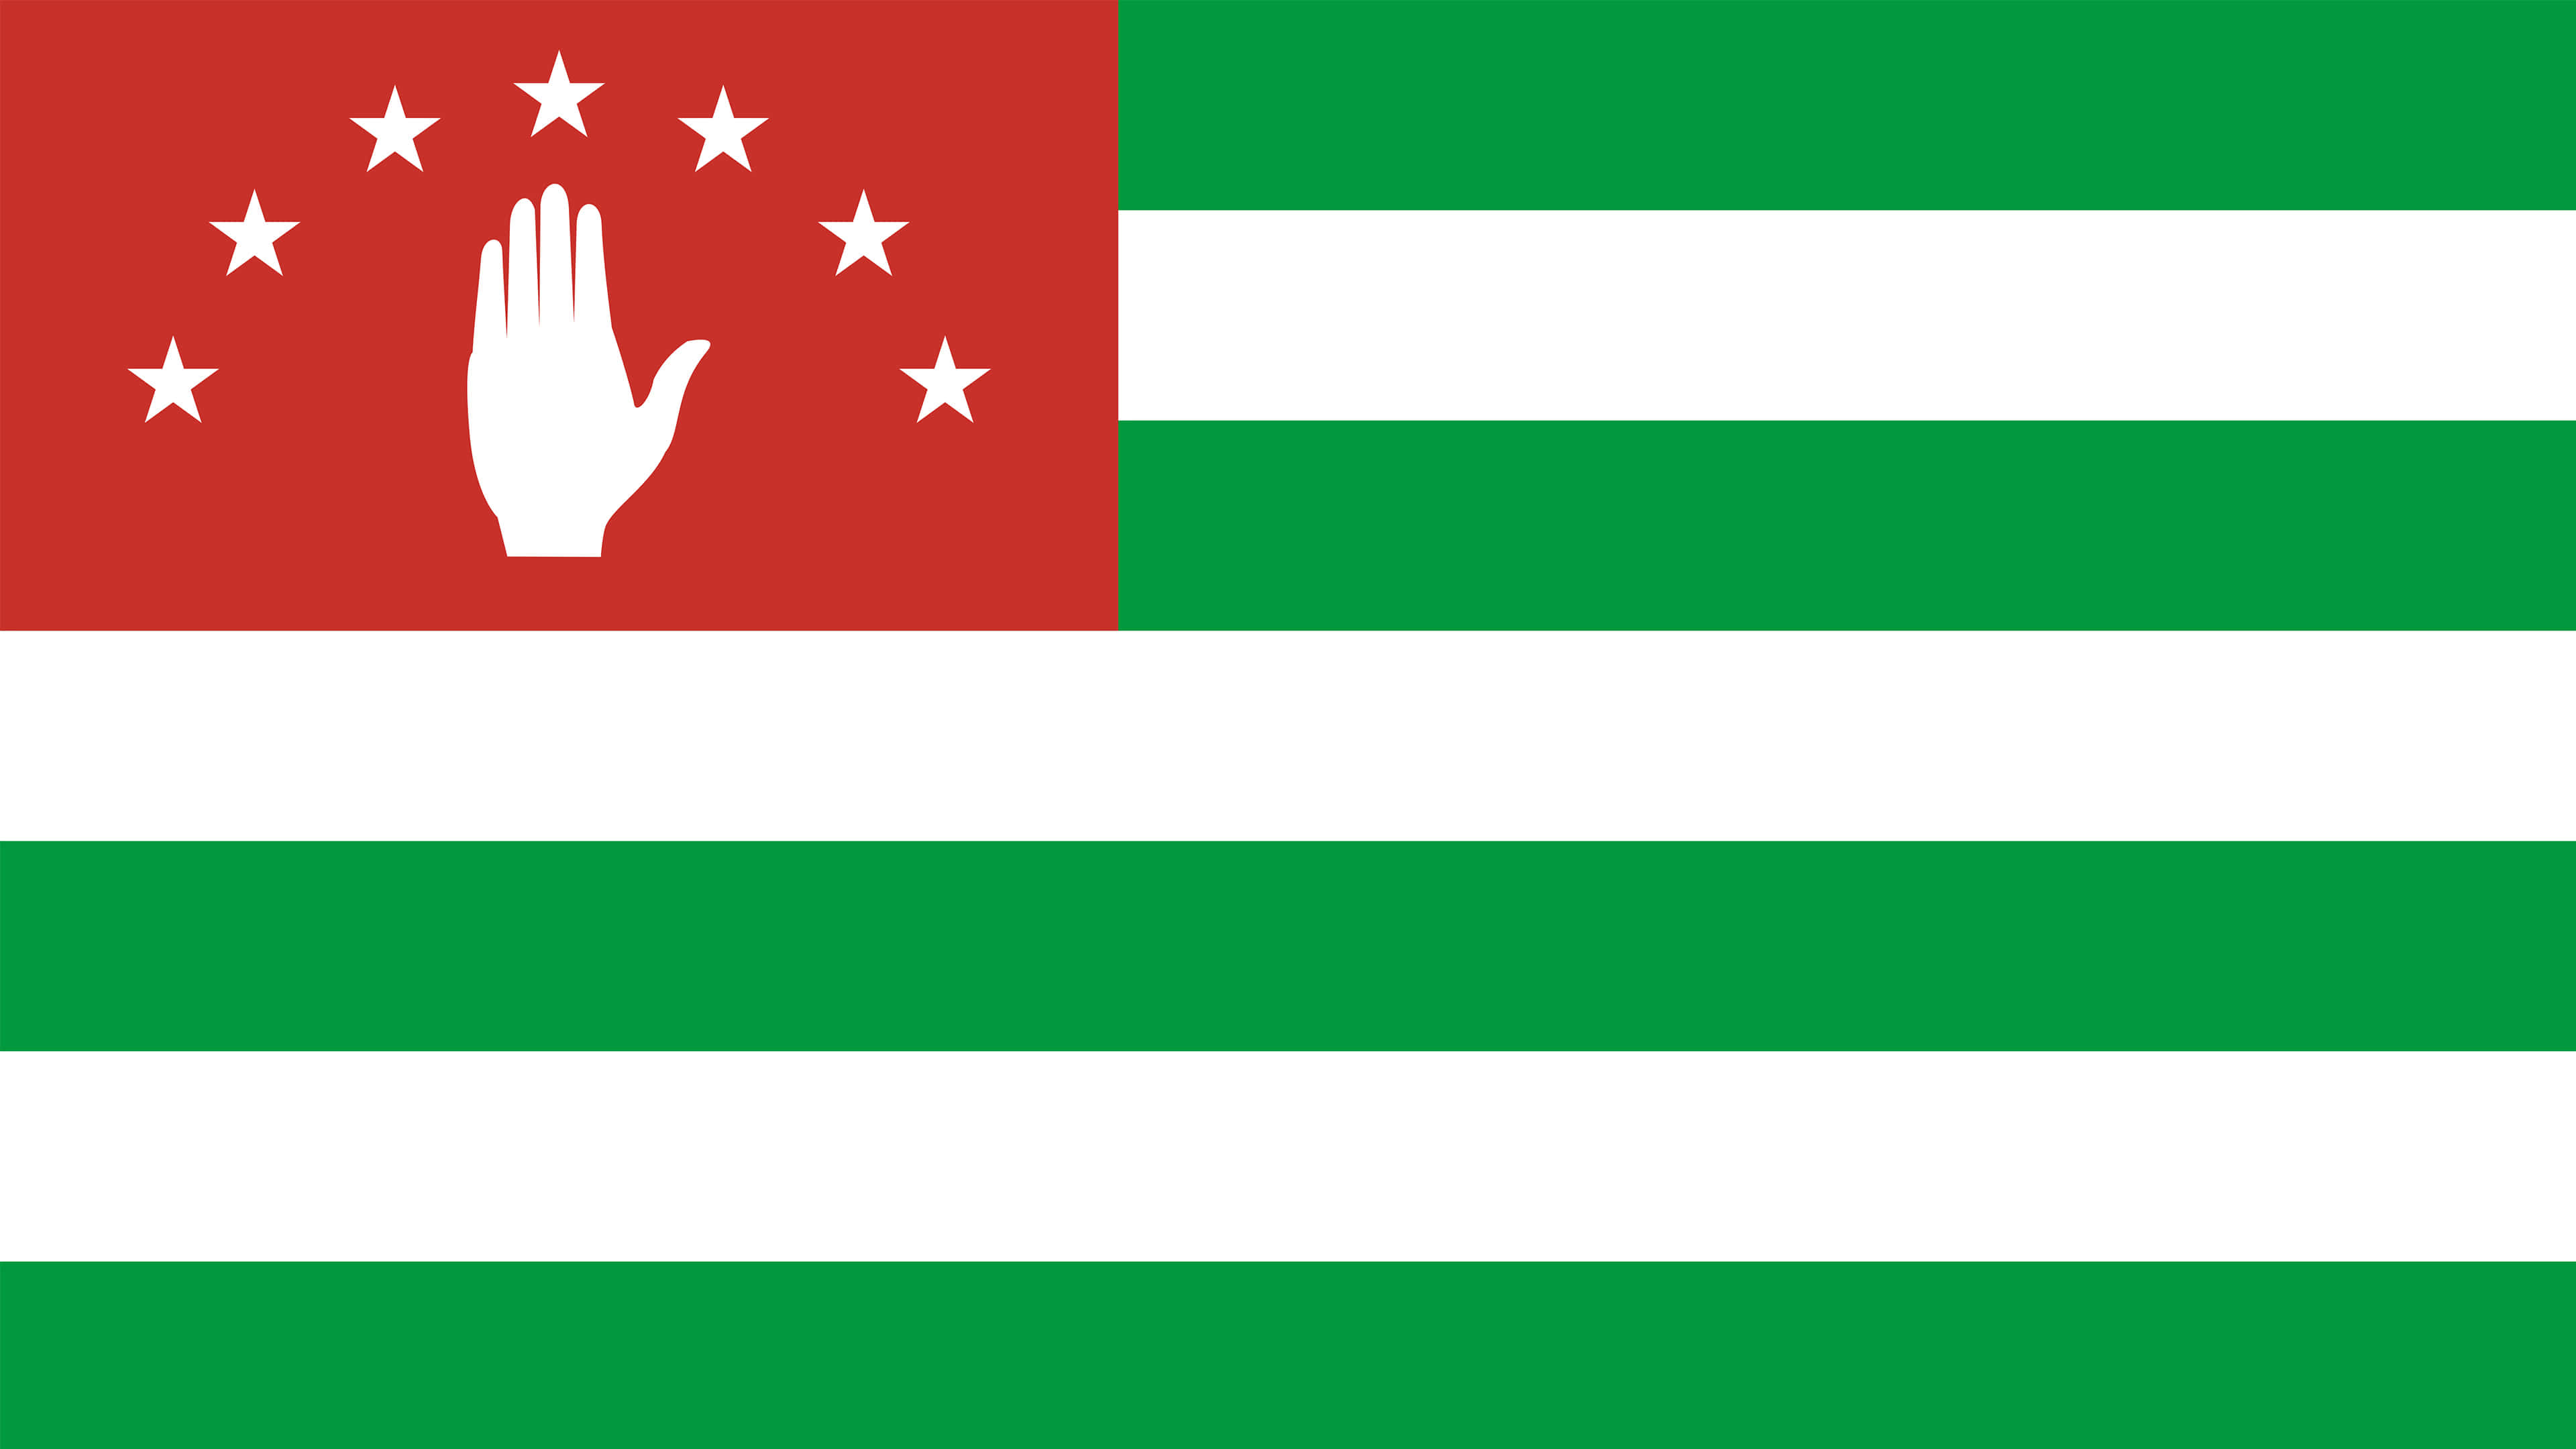 republic of abkhazia flag uhd 4k wallpaper